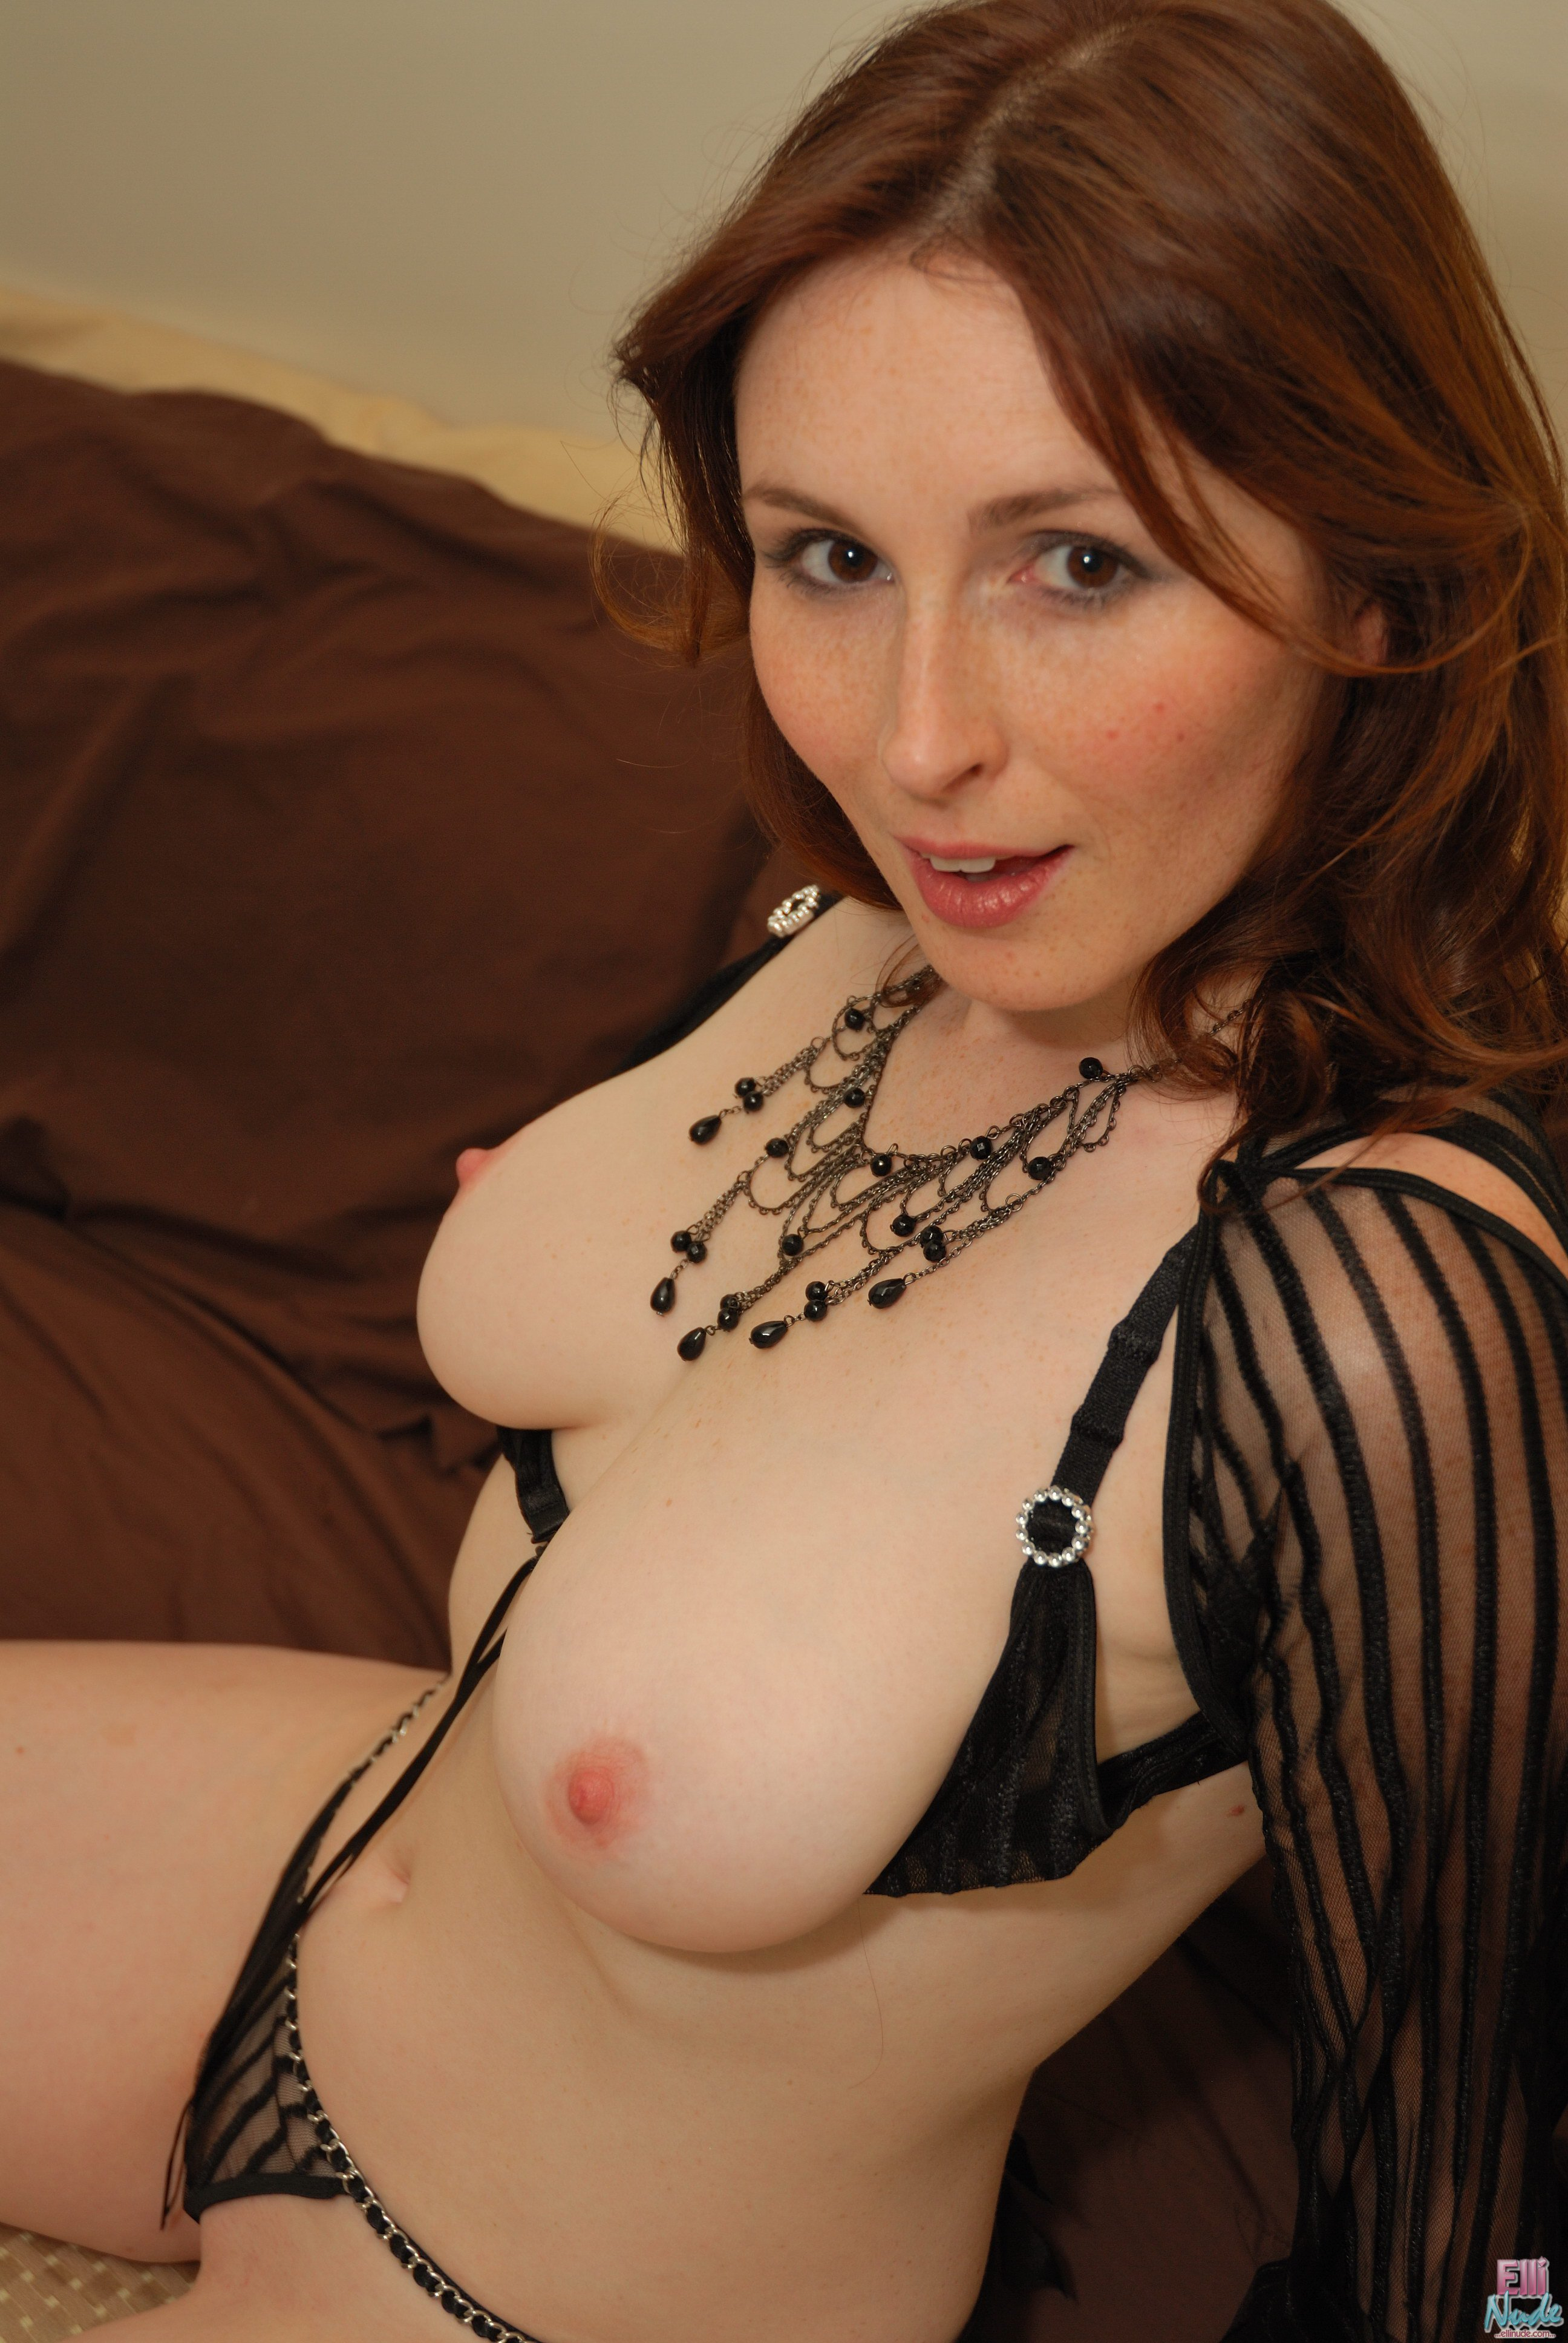 sleeping mother free tubes look excite and delight sleeping #DeeDeeLynn #alluring #available #babe #babe #babe #comefuckme #datenight #datenight #downblouse #freckledchest #fuckinghot #fuckingsexy #fuckme #fun #ginger #gorgeousbabe #gorgeousbabe #gorgeousbody #great #horny #horny #hot #hottie #hottie #hottie #hottotrot #idtapthat #innocentlook #instantclassic #iwanttofuckher #iwanttoundressherandfuckher #justperfect #justwow #naked #naughty #nice #nicerack #notsoinnocent #omg #omg #onenightstand #redhead #redlips #seduction #seductive #sexiest #sexiest #sexy #sexybabe #sexybabe #sexytits #shelookslikefun #sheshot #shewantsit #shewantsitbad #shewantstofuck #slut #slut #slutty #slutty #slutwear #smut #smut #smutty #softandsensual #sofuckable #sohot #sultry #sultry #sweet #takemehome #tits #top #veryhot #veryhot #verysexy #verysexy #wow